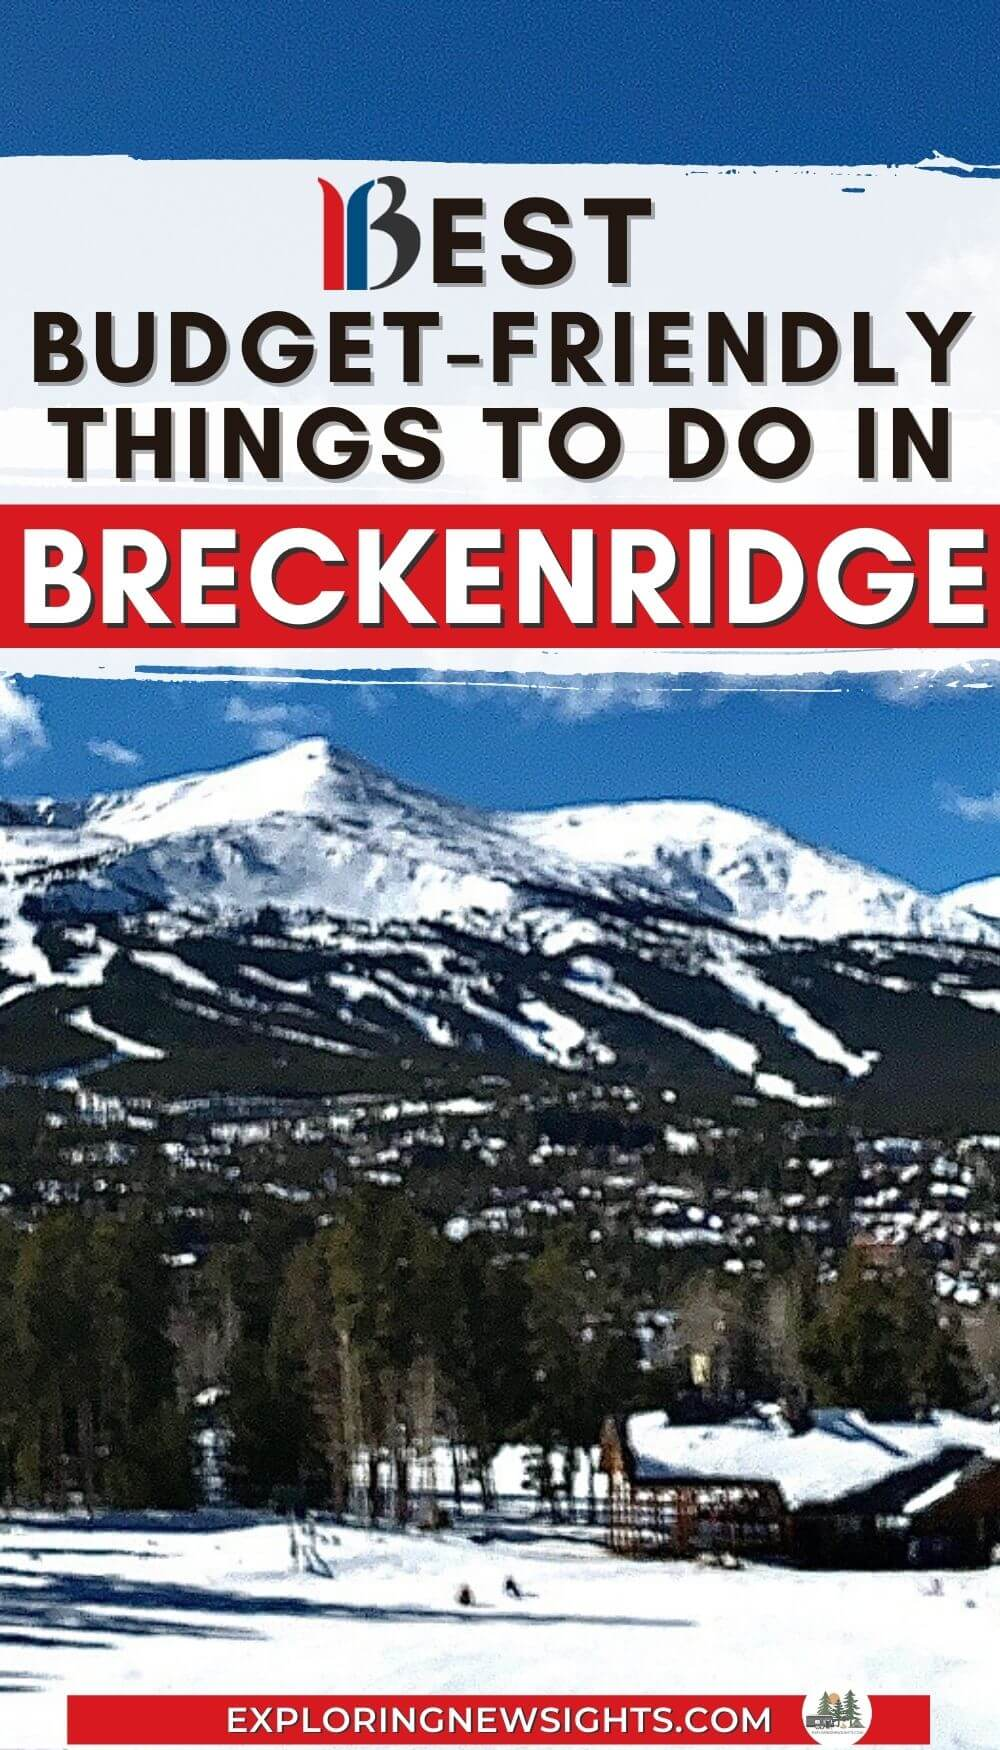 Best things to do in Breckenridge Colorado when you are on a budget.